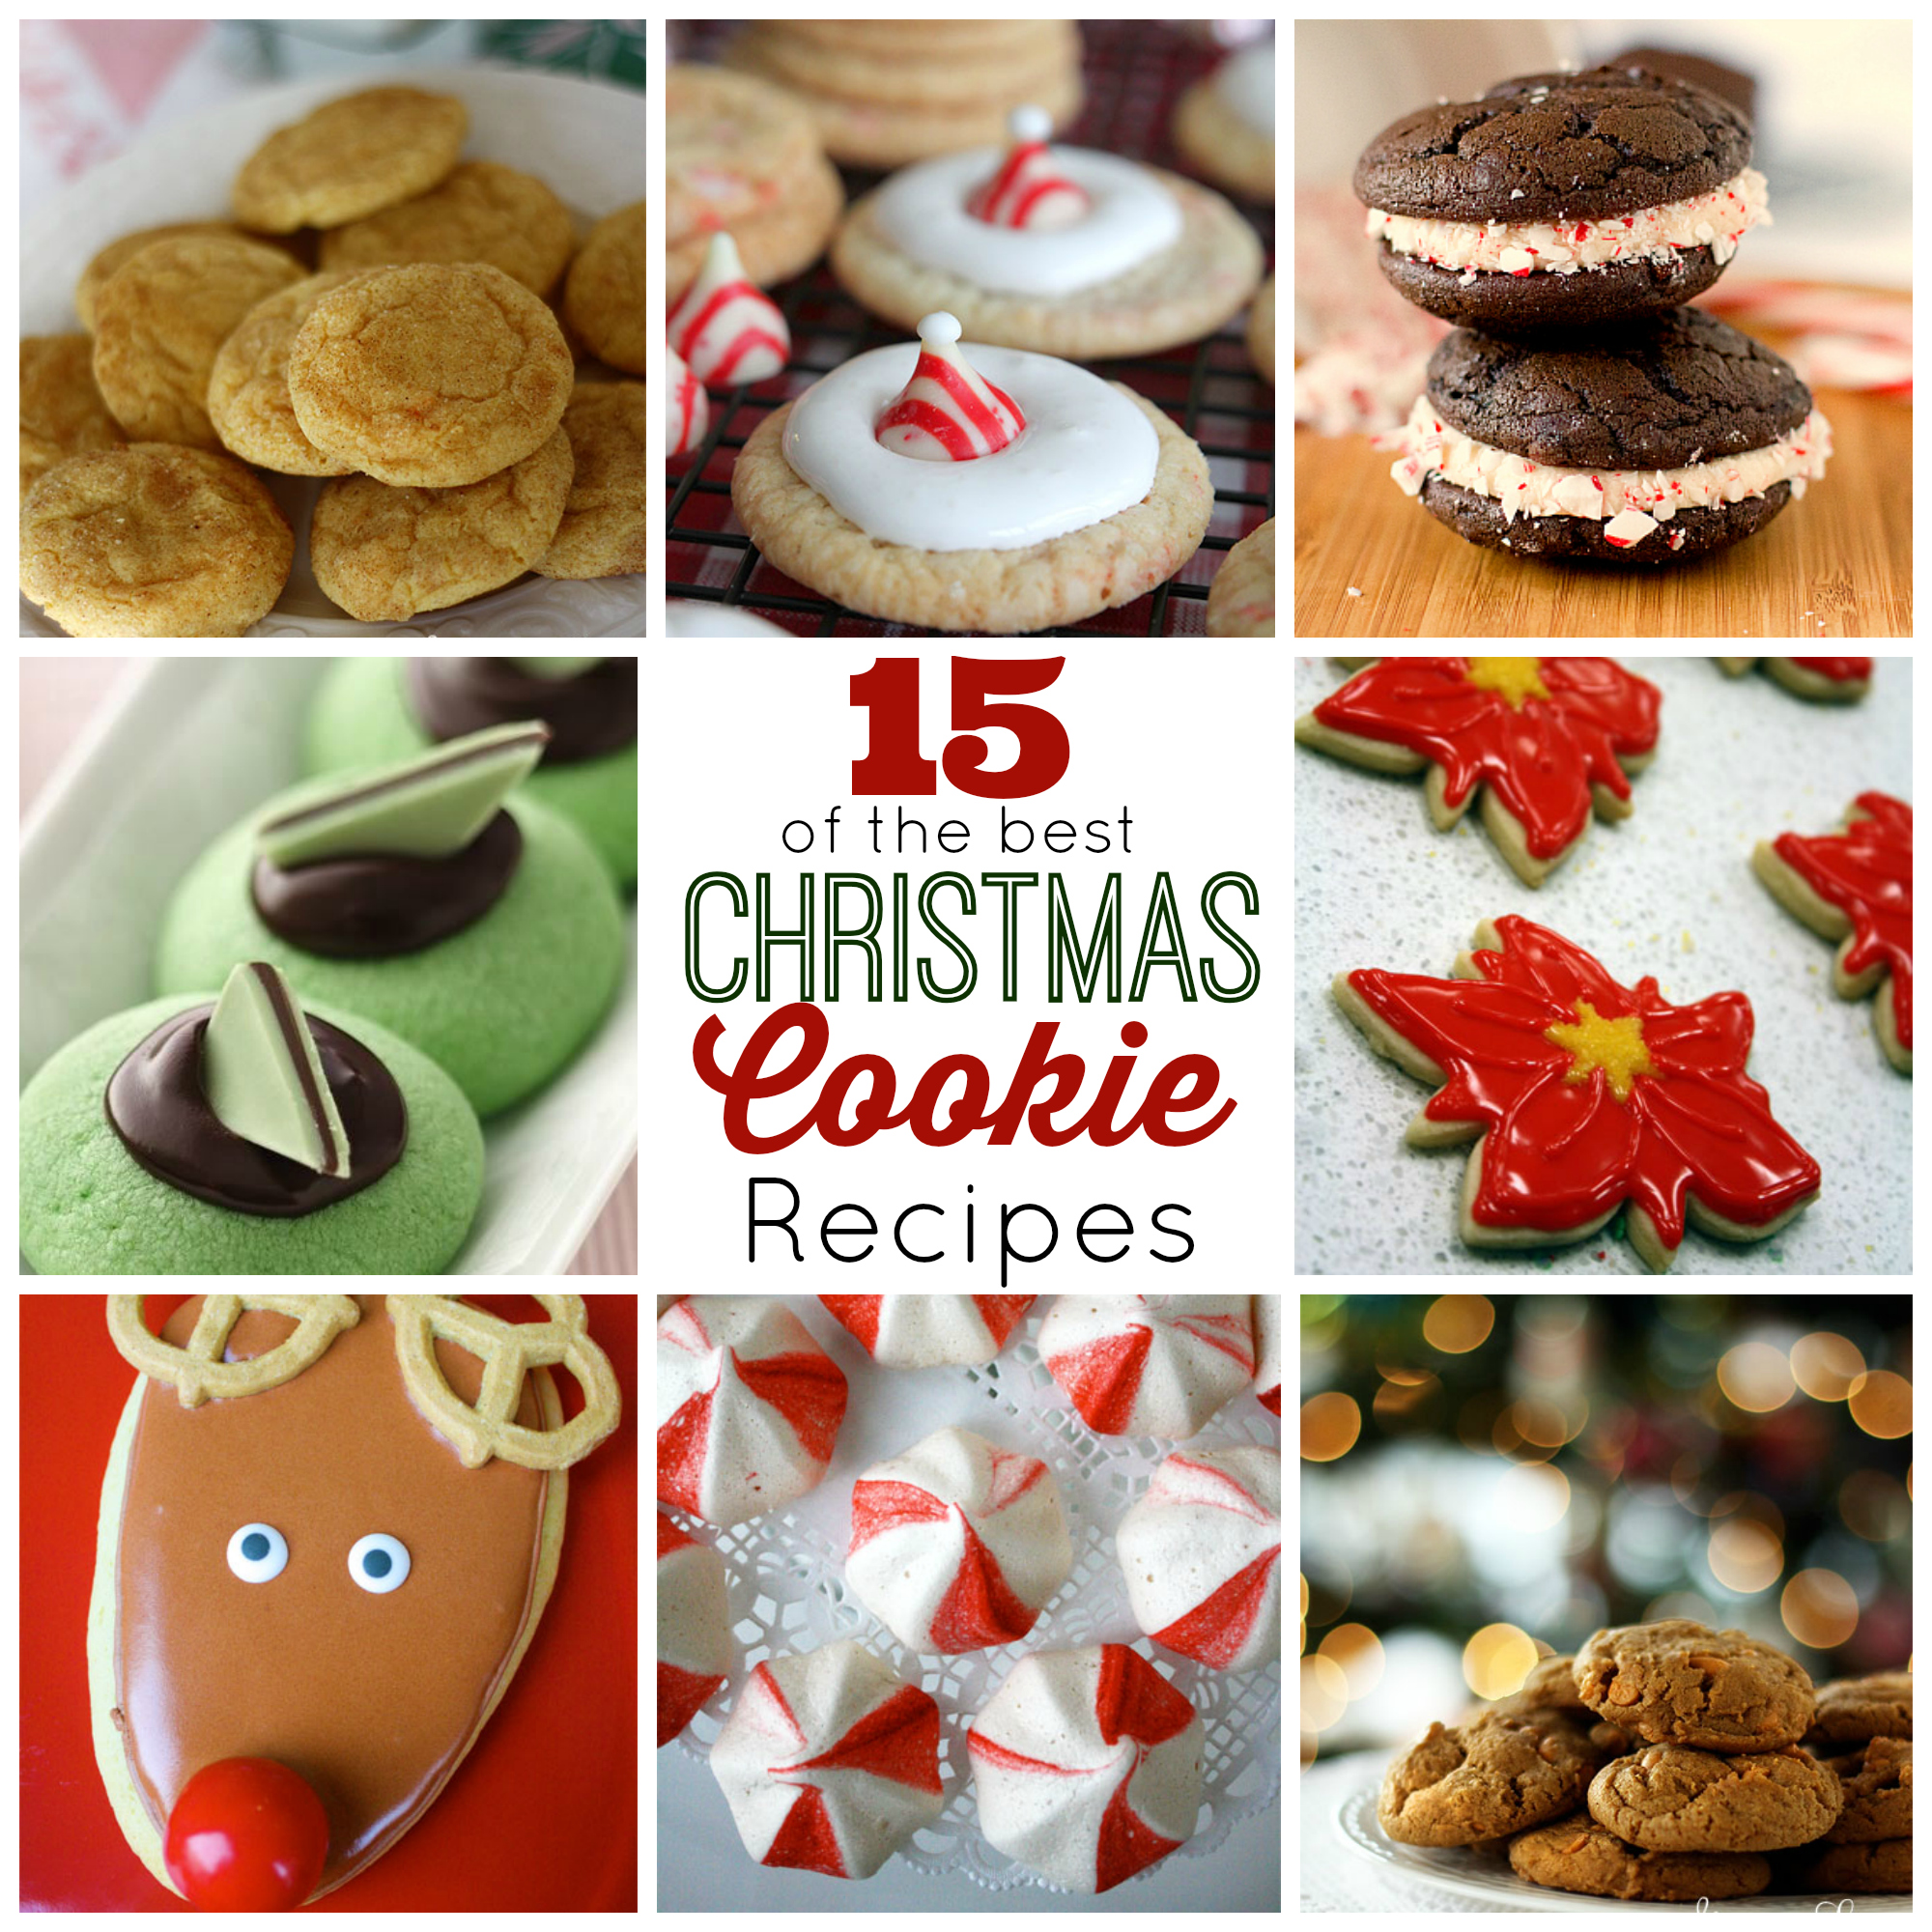 chirstmas cookie recipes - Best Christmas Cookies Recipes